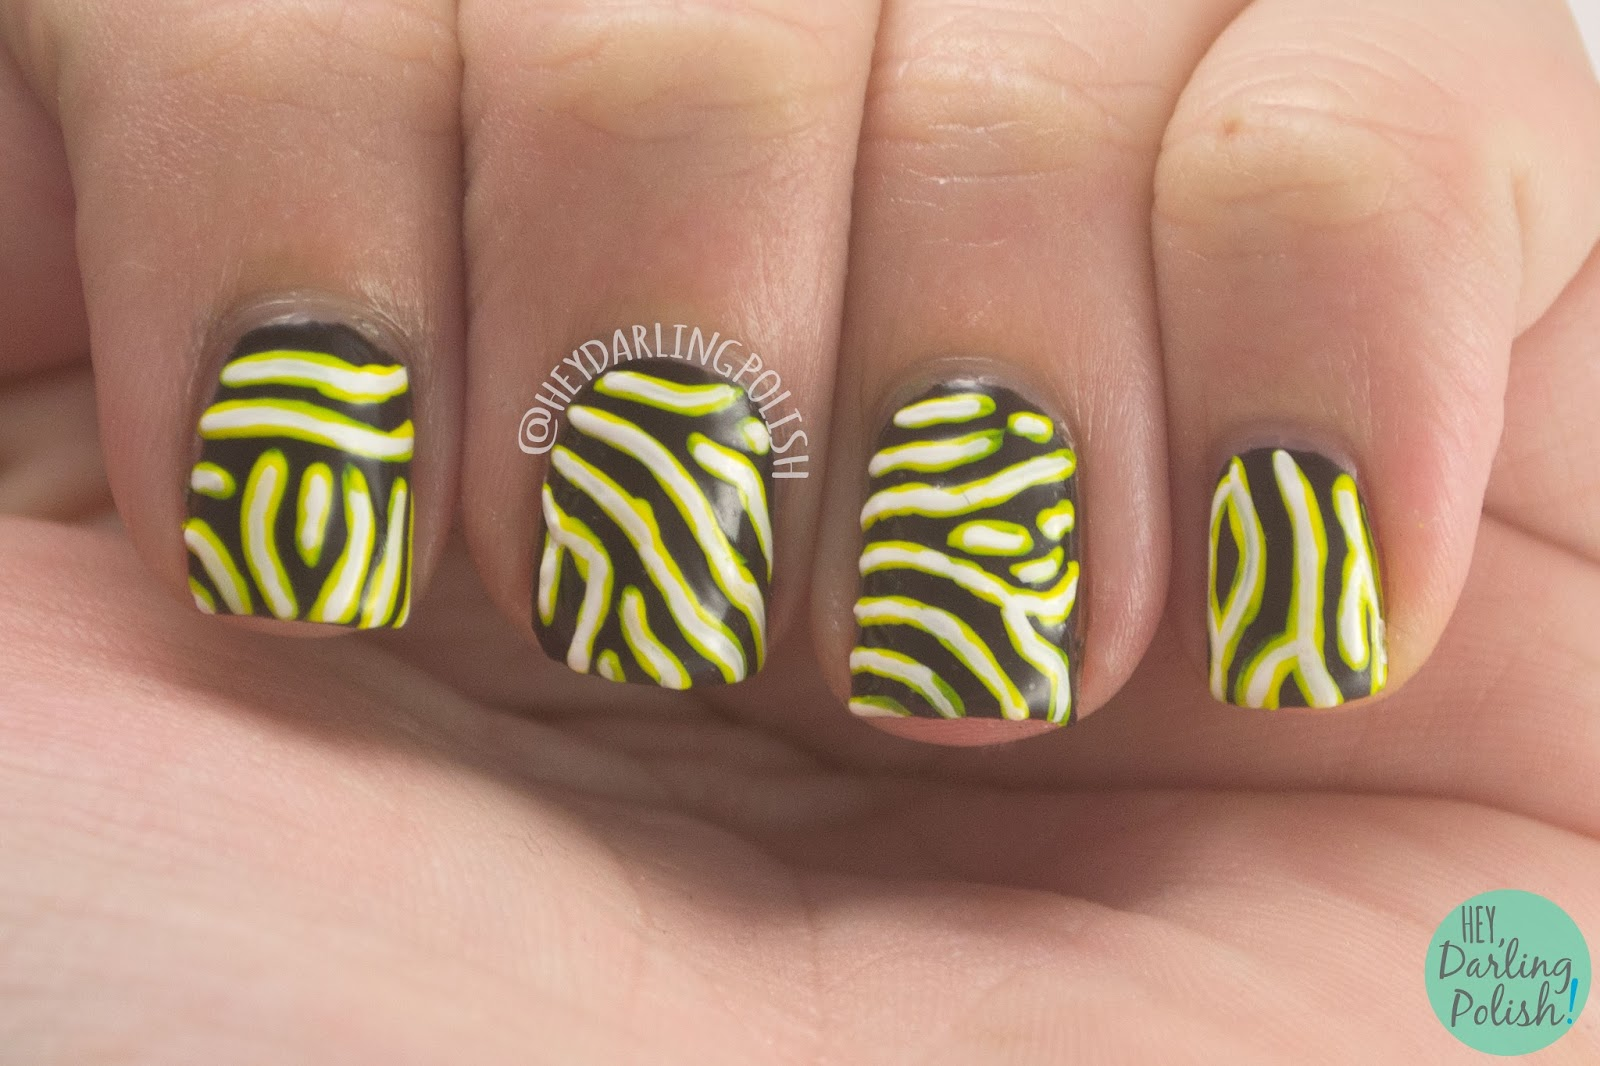 nails, nail art, nail polish, animal print, map puffer fish, hey darling polish, 31 day challenge, 31dc2014